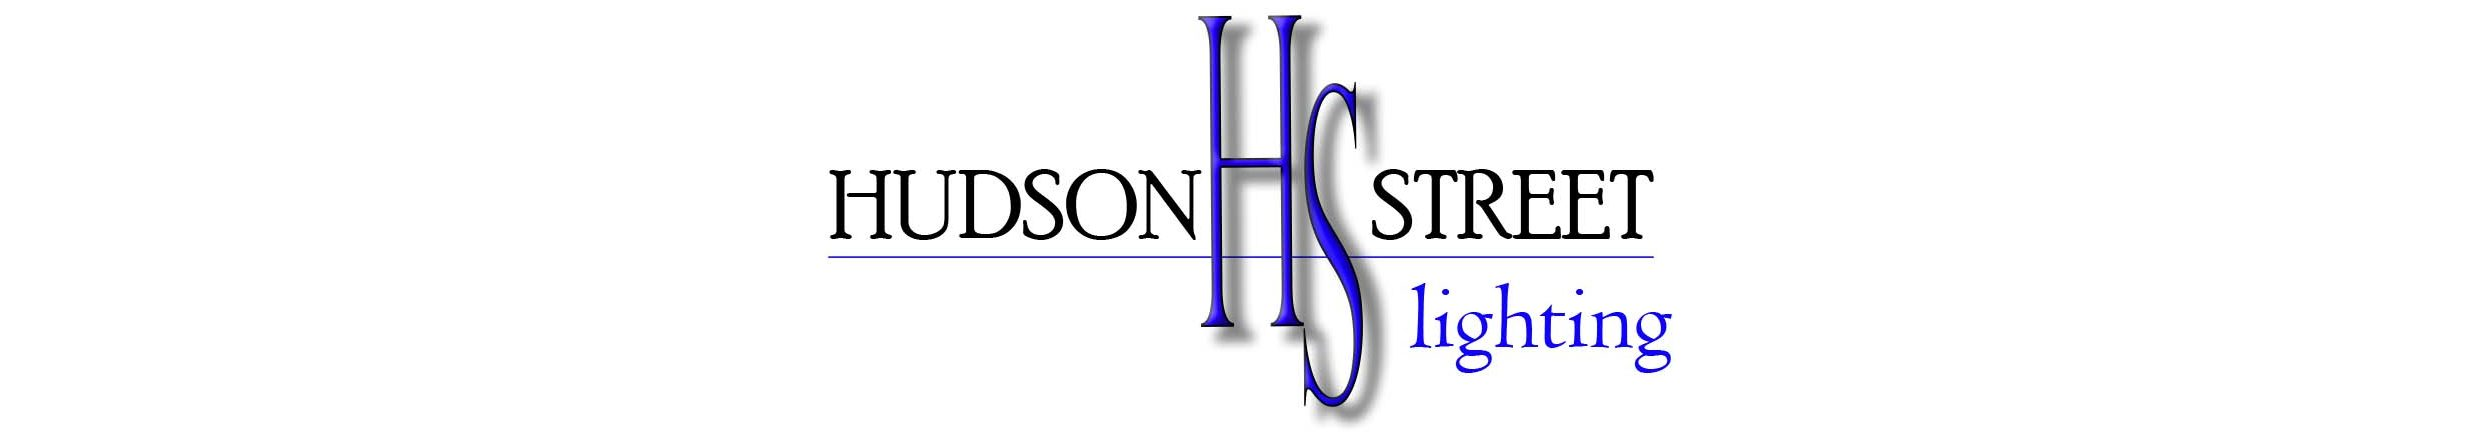 Hudson Street Lighting, LLC